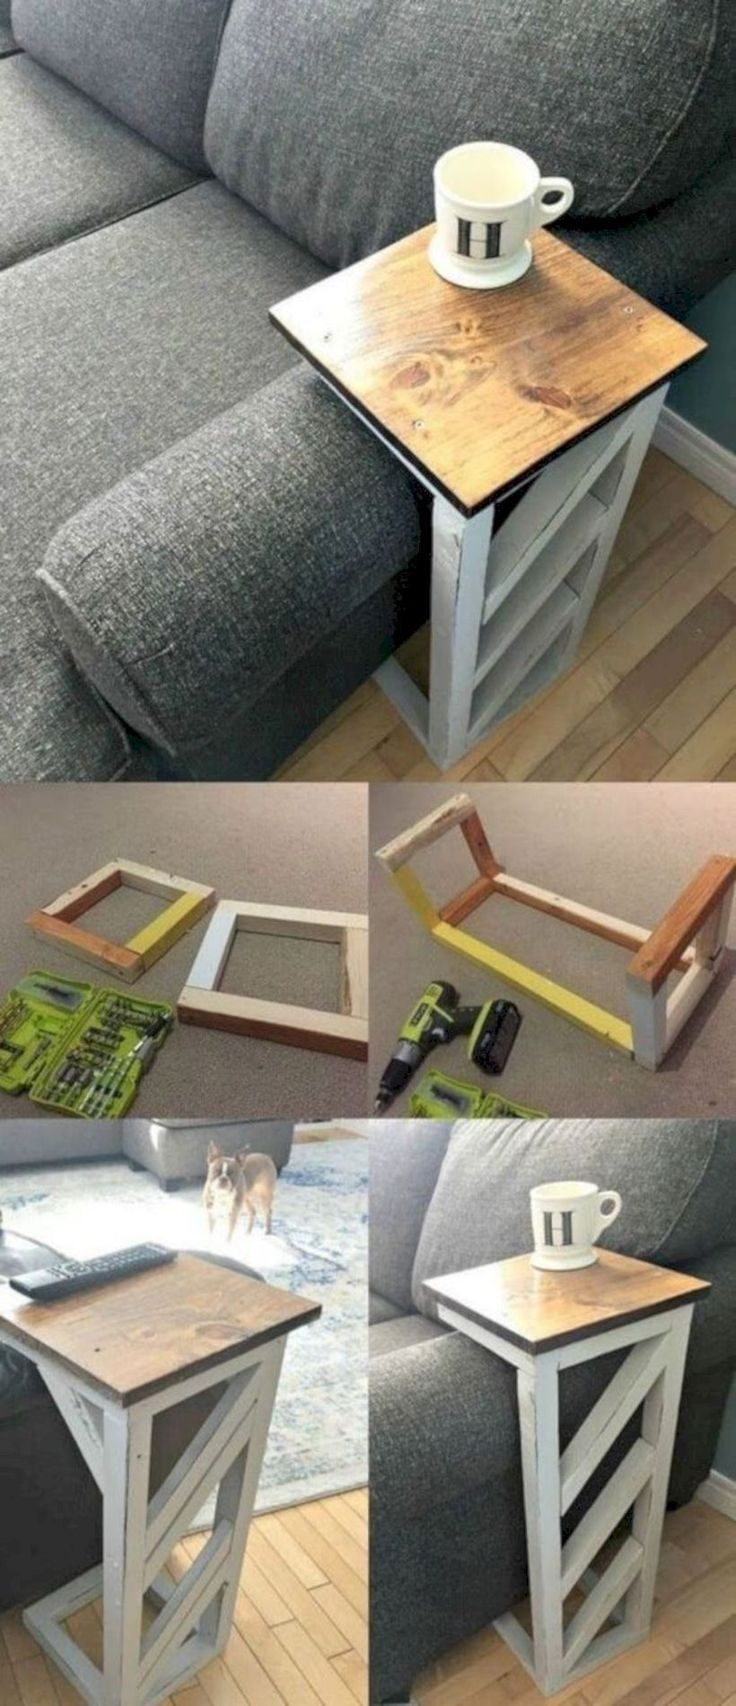 44 Remarkable Projects And Ideas To Improve Your Home Decor ~ Matchness.Com - Diy Home Decor